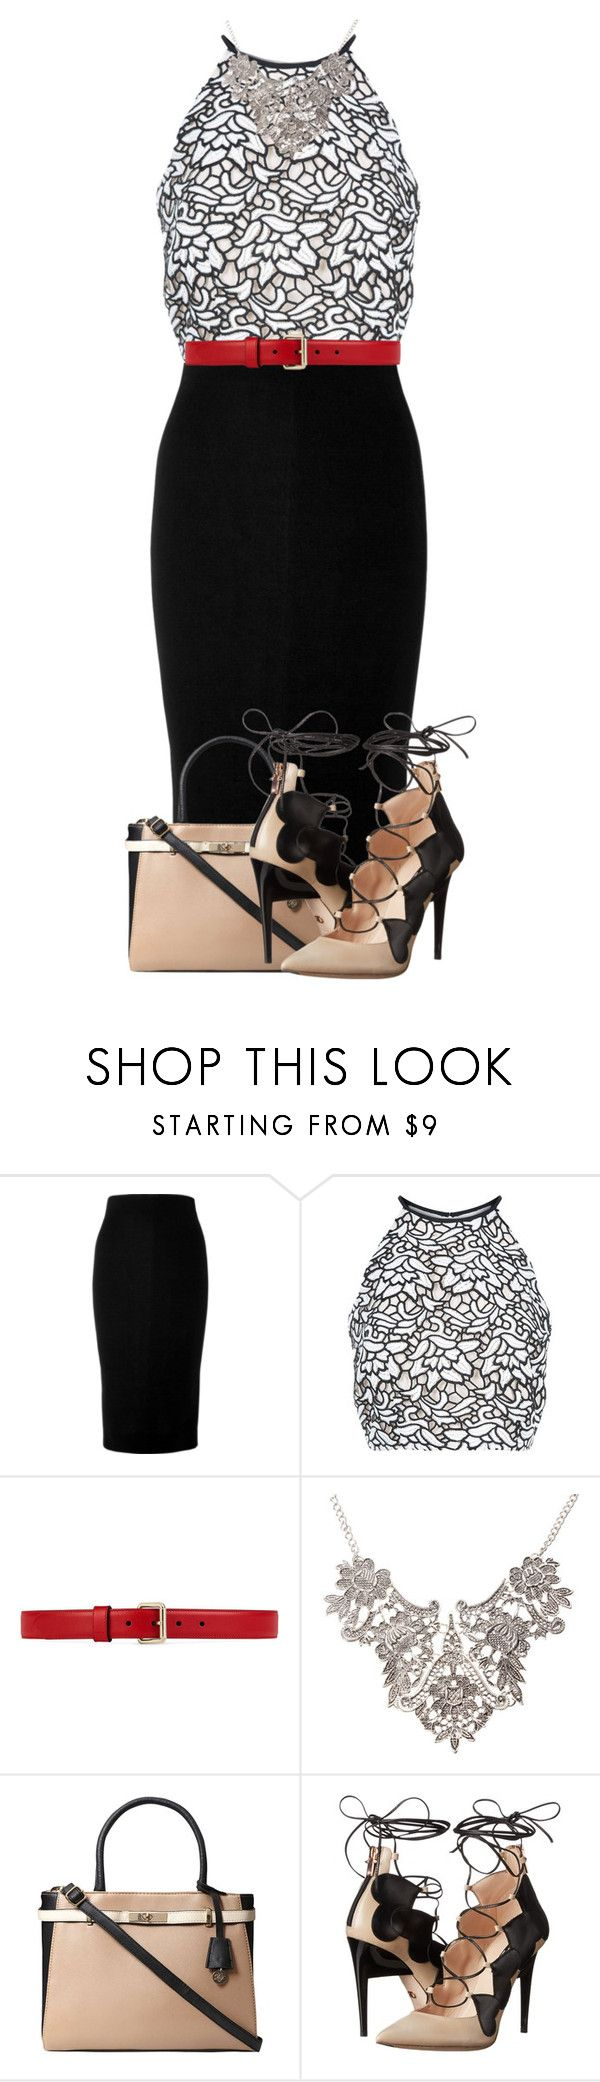 """Untitled #729"" by luhmartins ❤ liked on Polyvore featuring Victoria Beckham, Keepsake the Label, Gucci, Dorothy Perkins and Ruthie Davis"